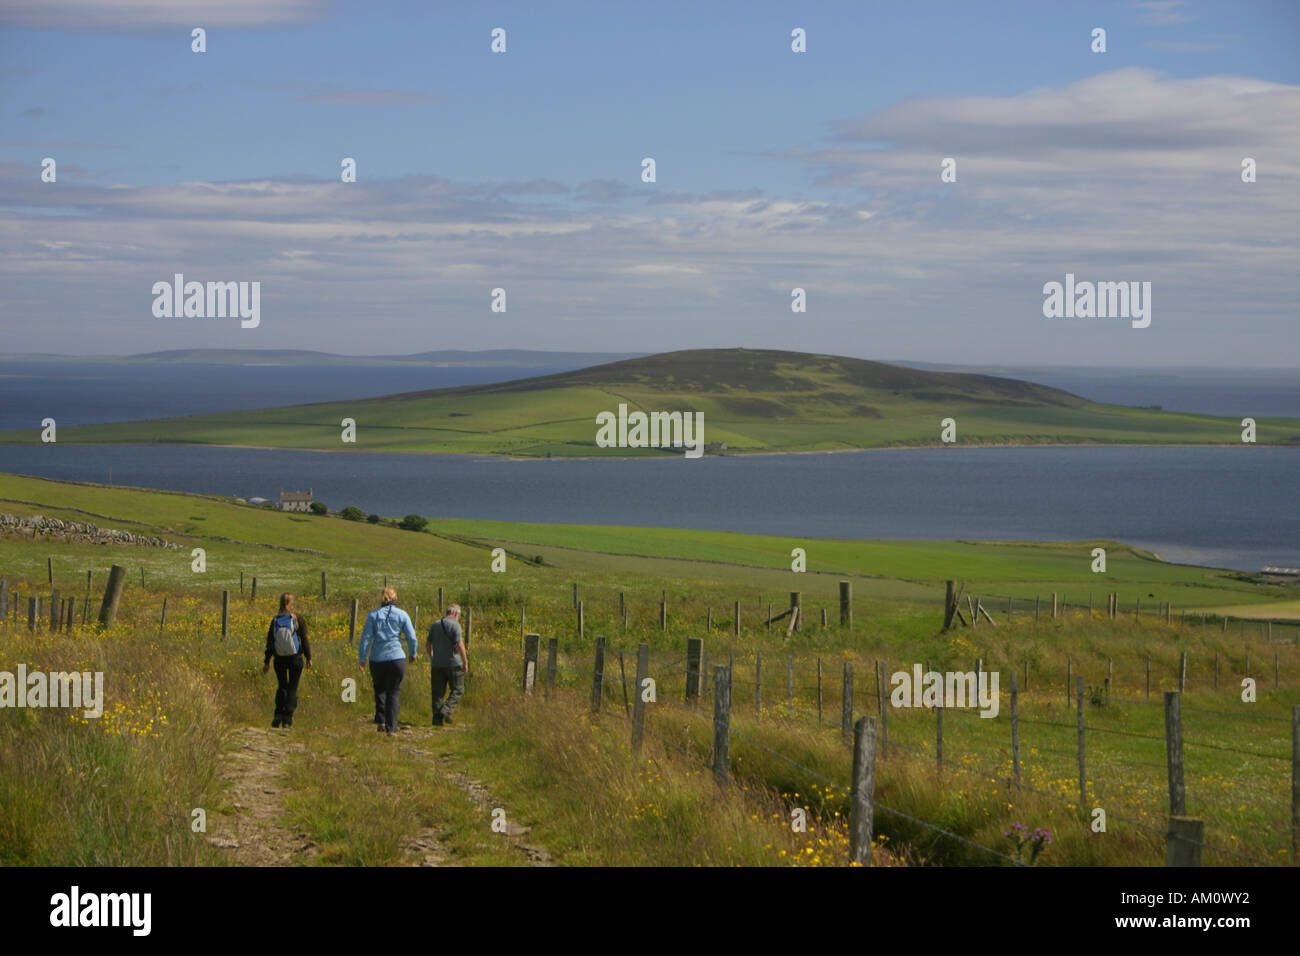 The Island of Gairsay from Yessa Hill on Orkney, Orkney Islands, Northern Isles, Scotland - Stock Image